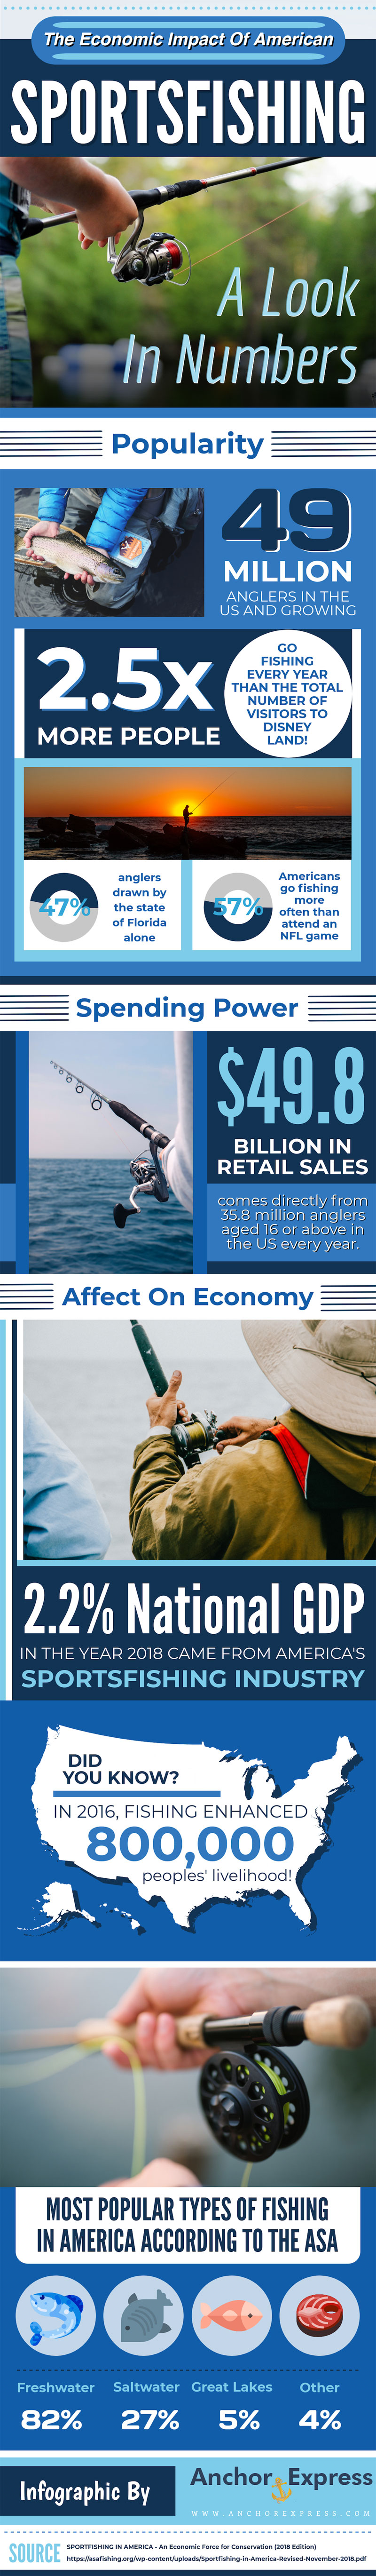 The Economic Impact of America Sportsfishing